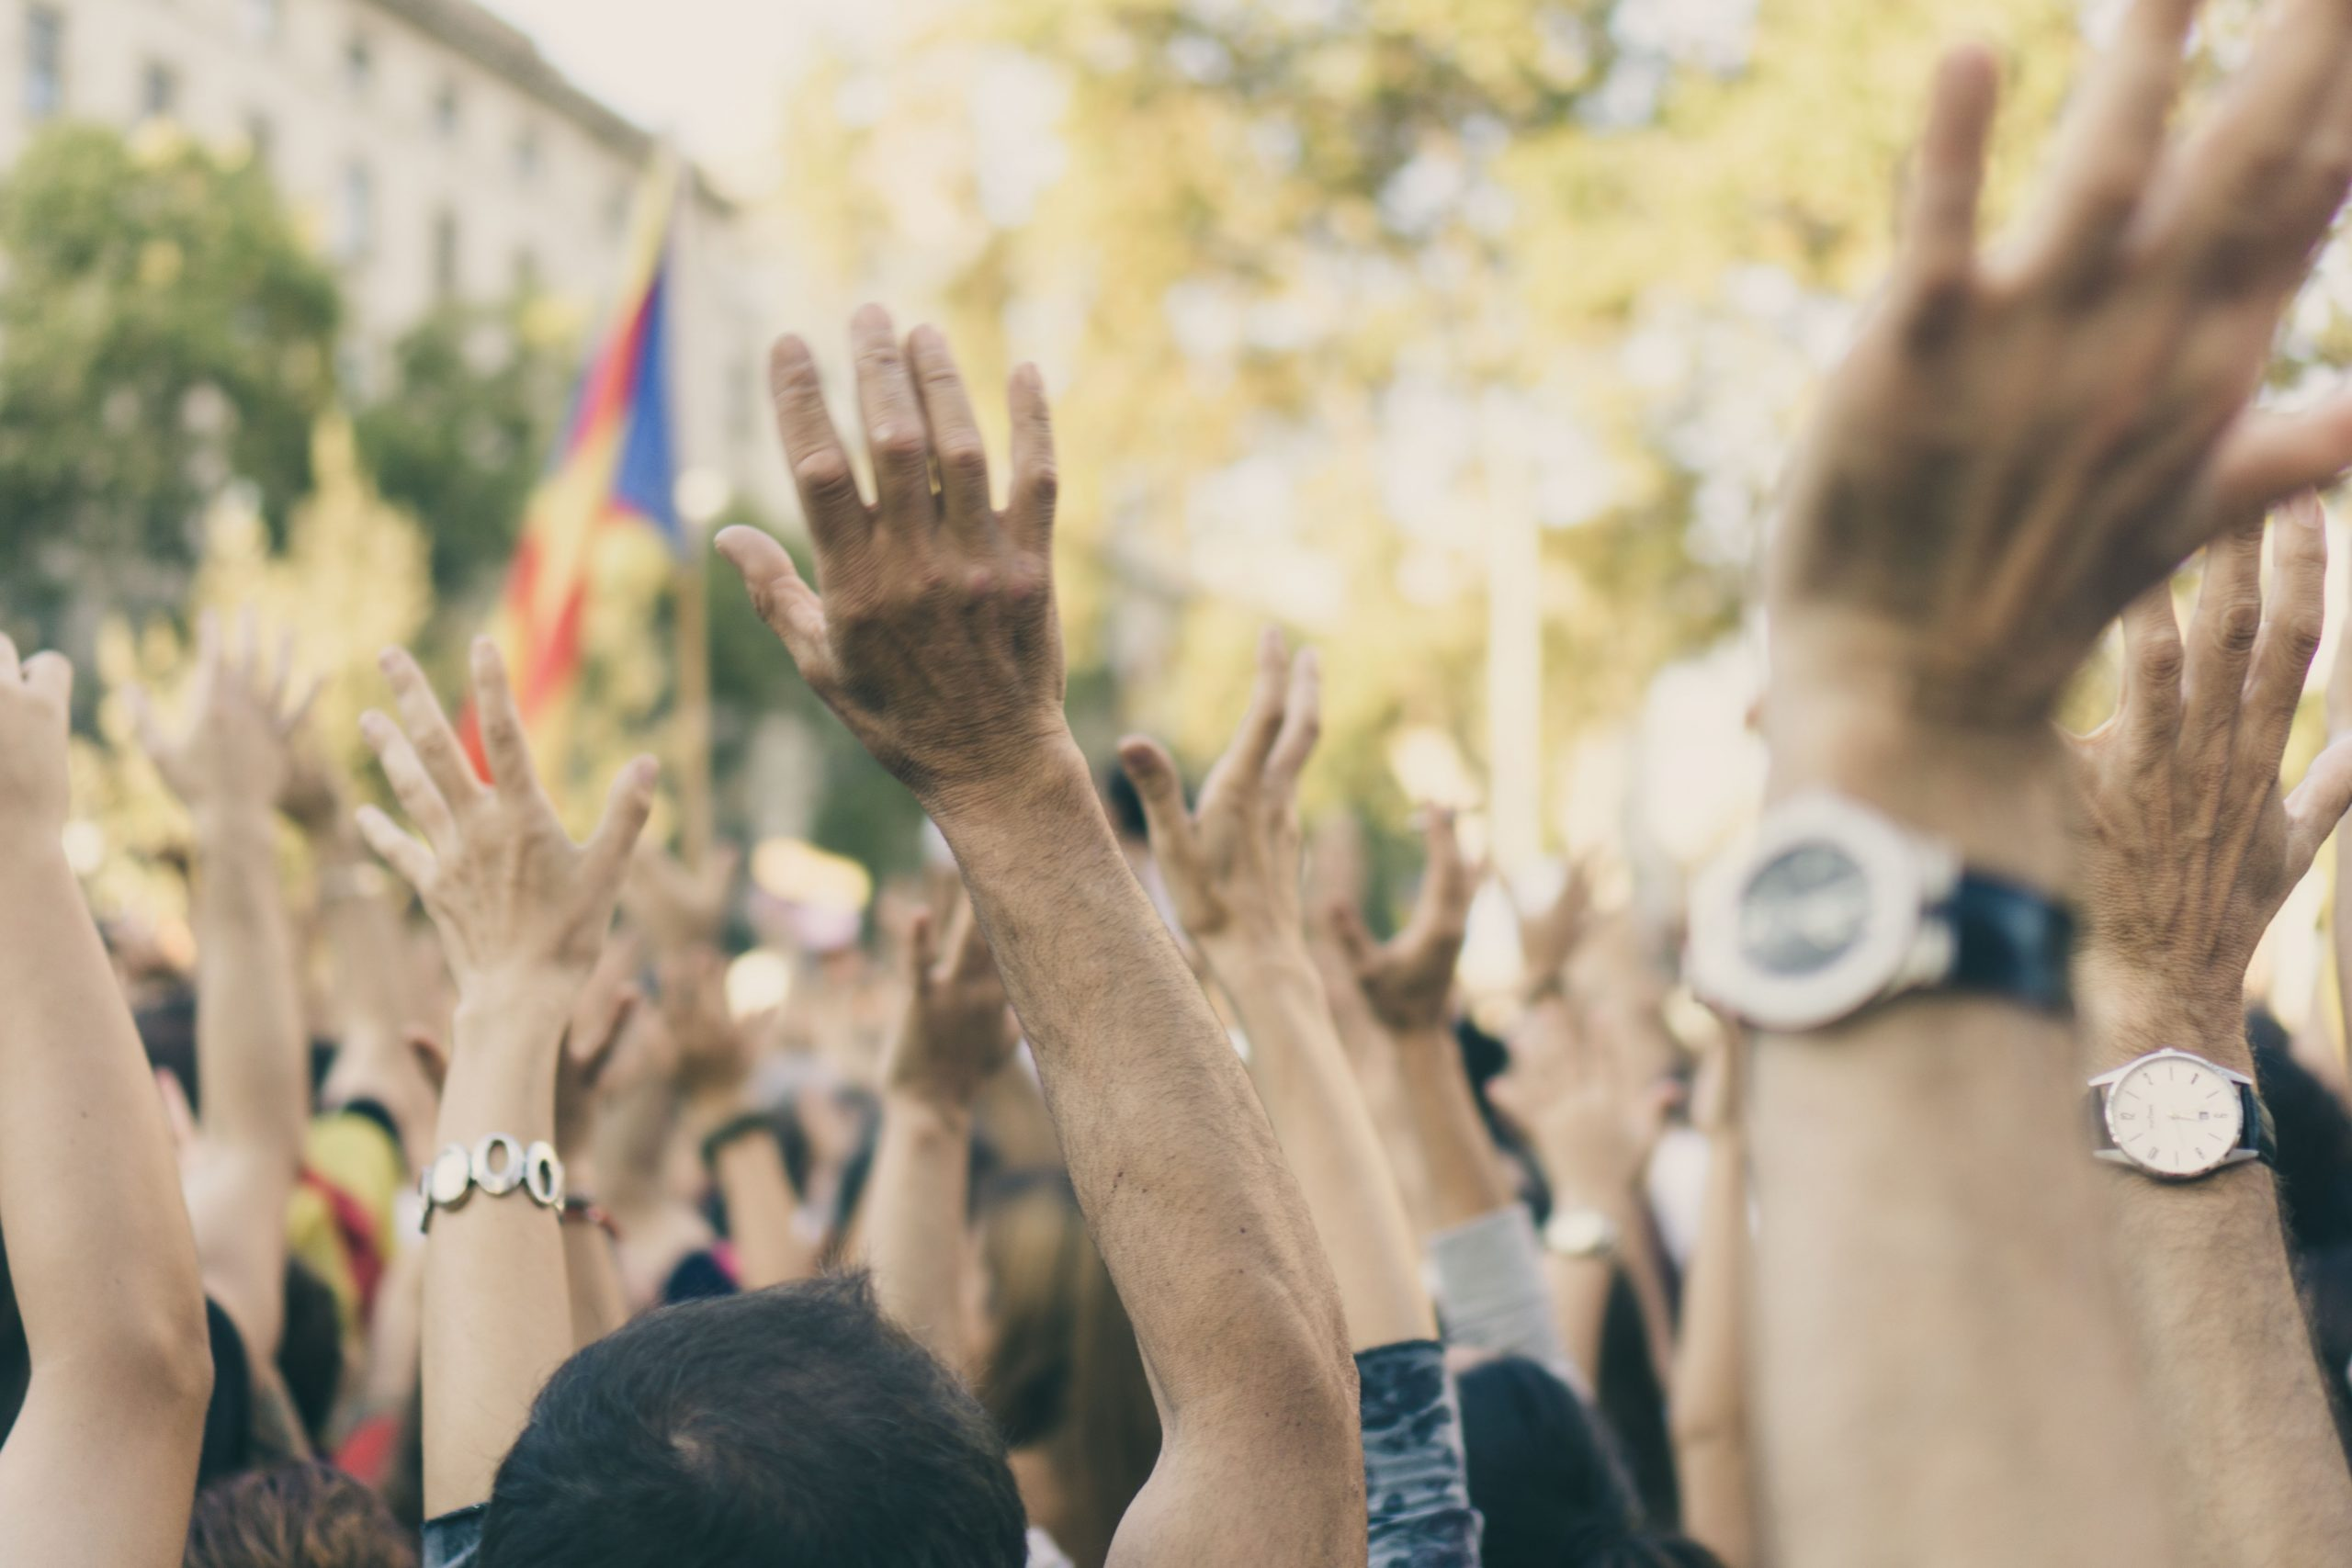 Hands in the air at a protest